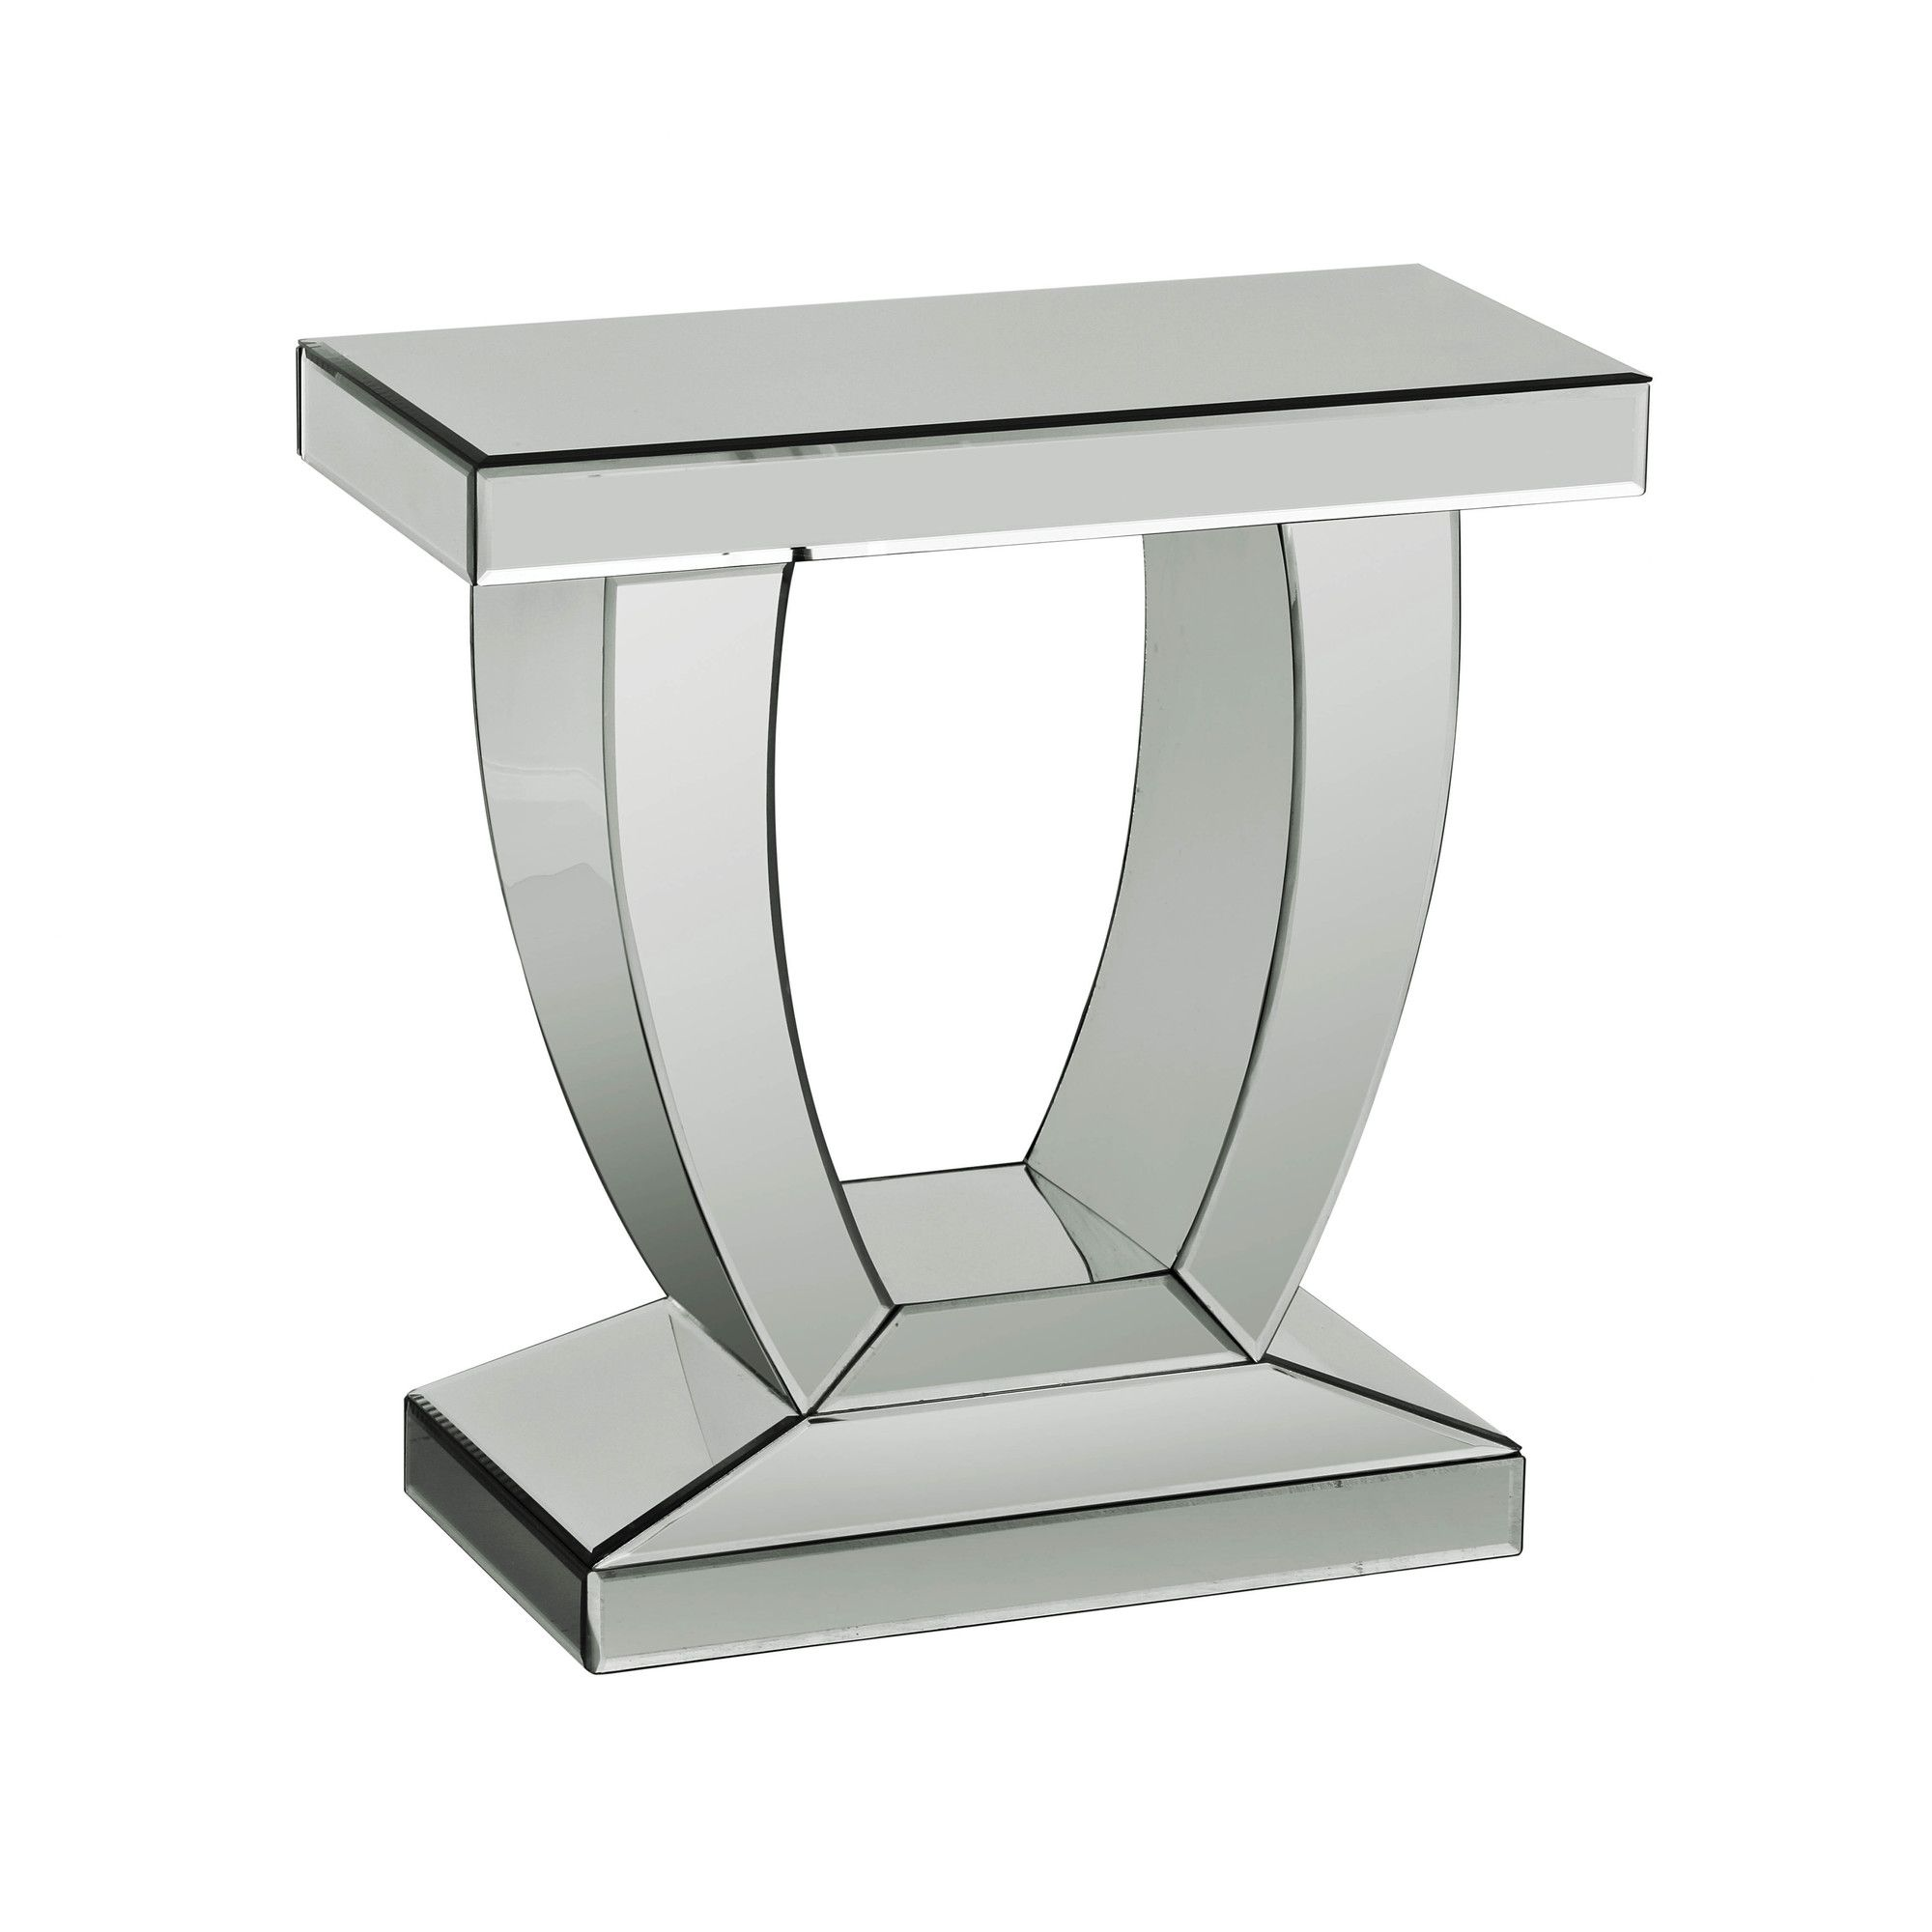 Premier Housewares Mirrored Side Table at Tesco Direct